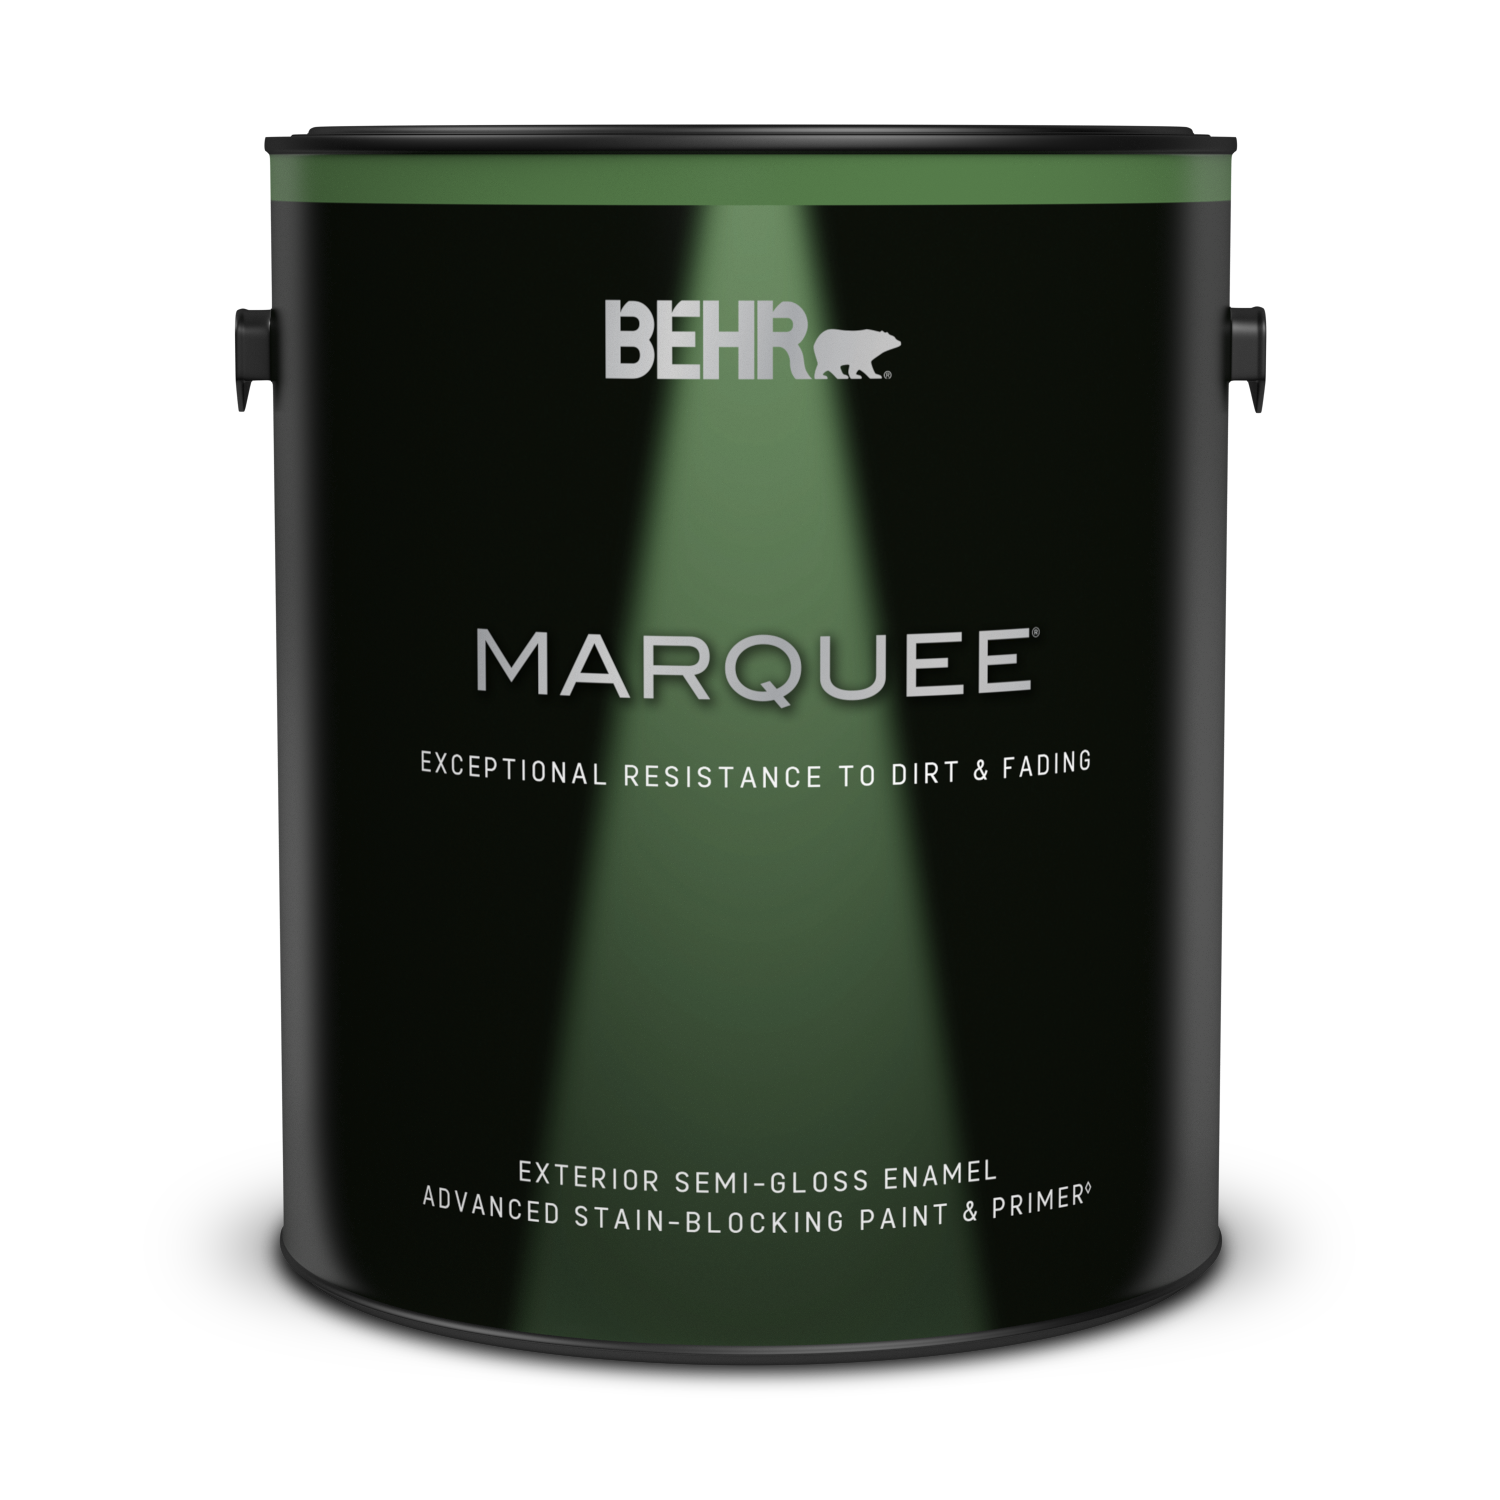 Exterior Semi Gloss Paint Behr Marquee Behr